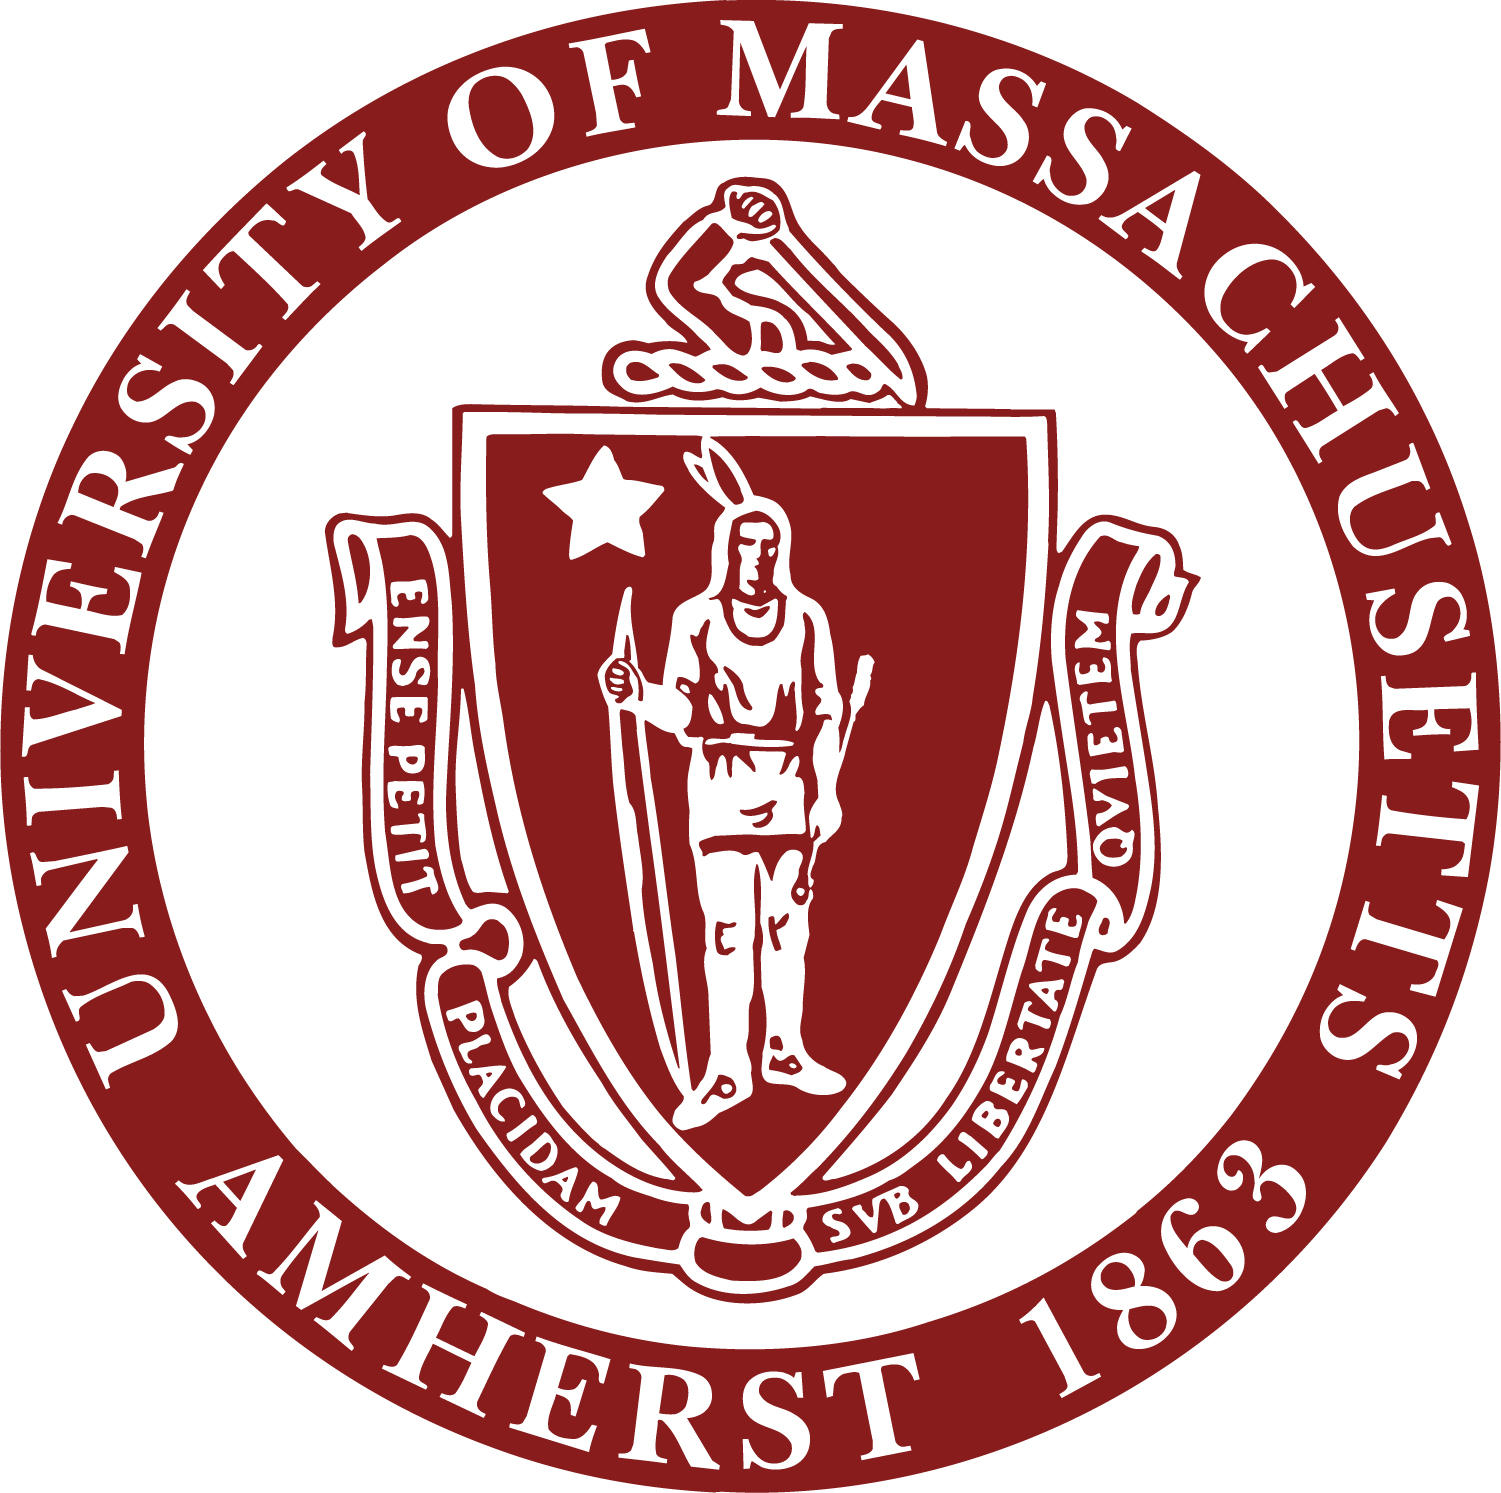 Umass amherst protesters want new seal and mascot connecticut credit university of massachusetts buycottarizona